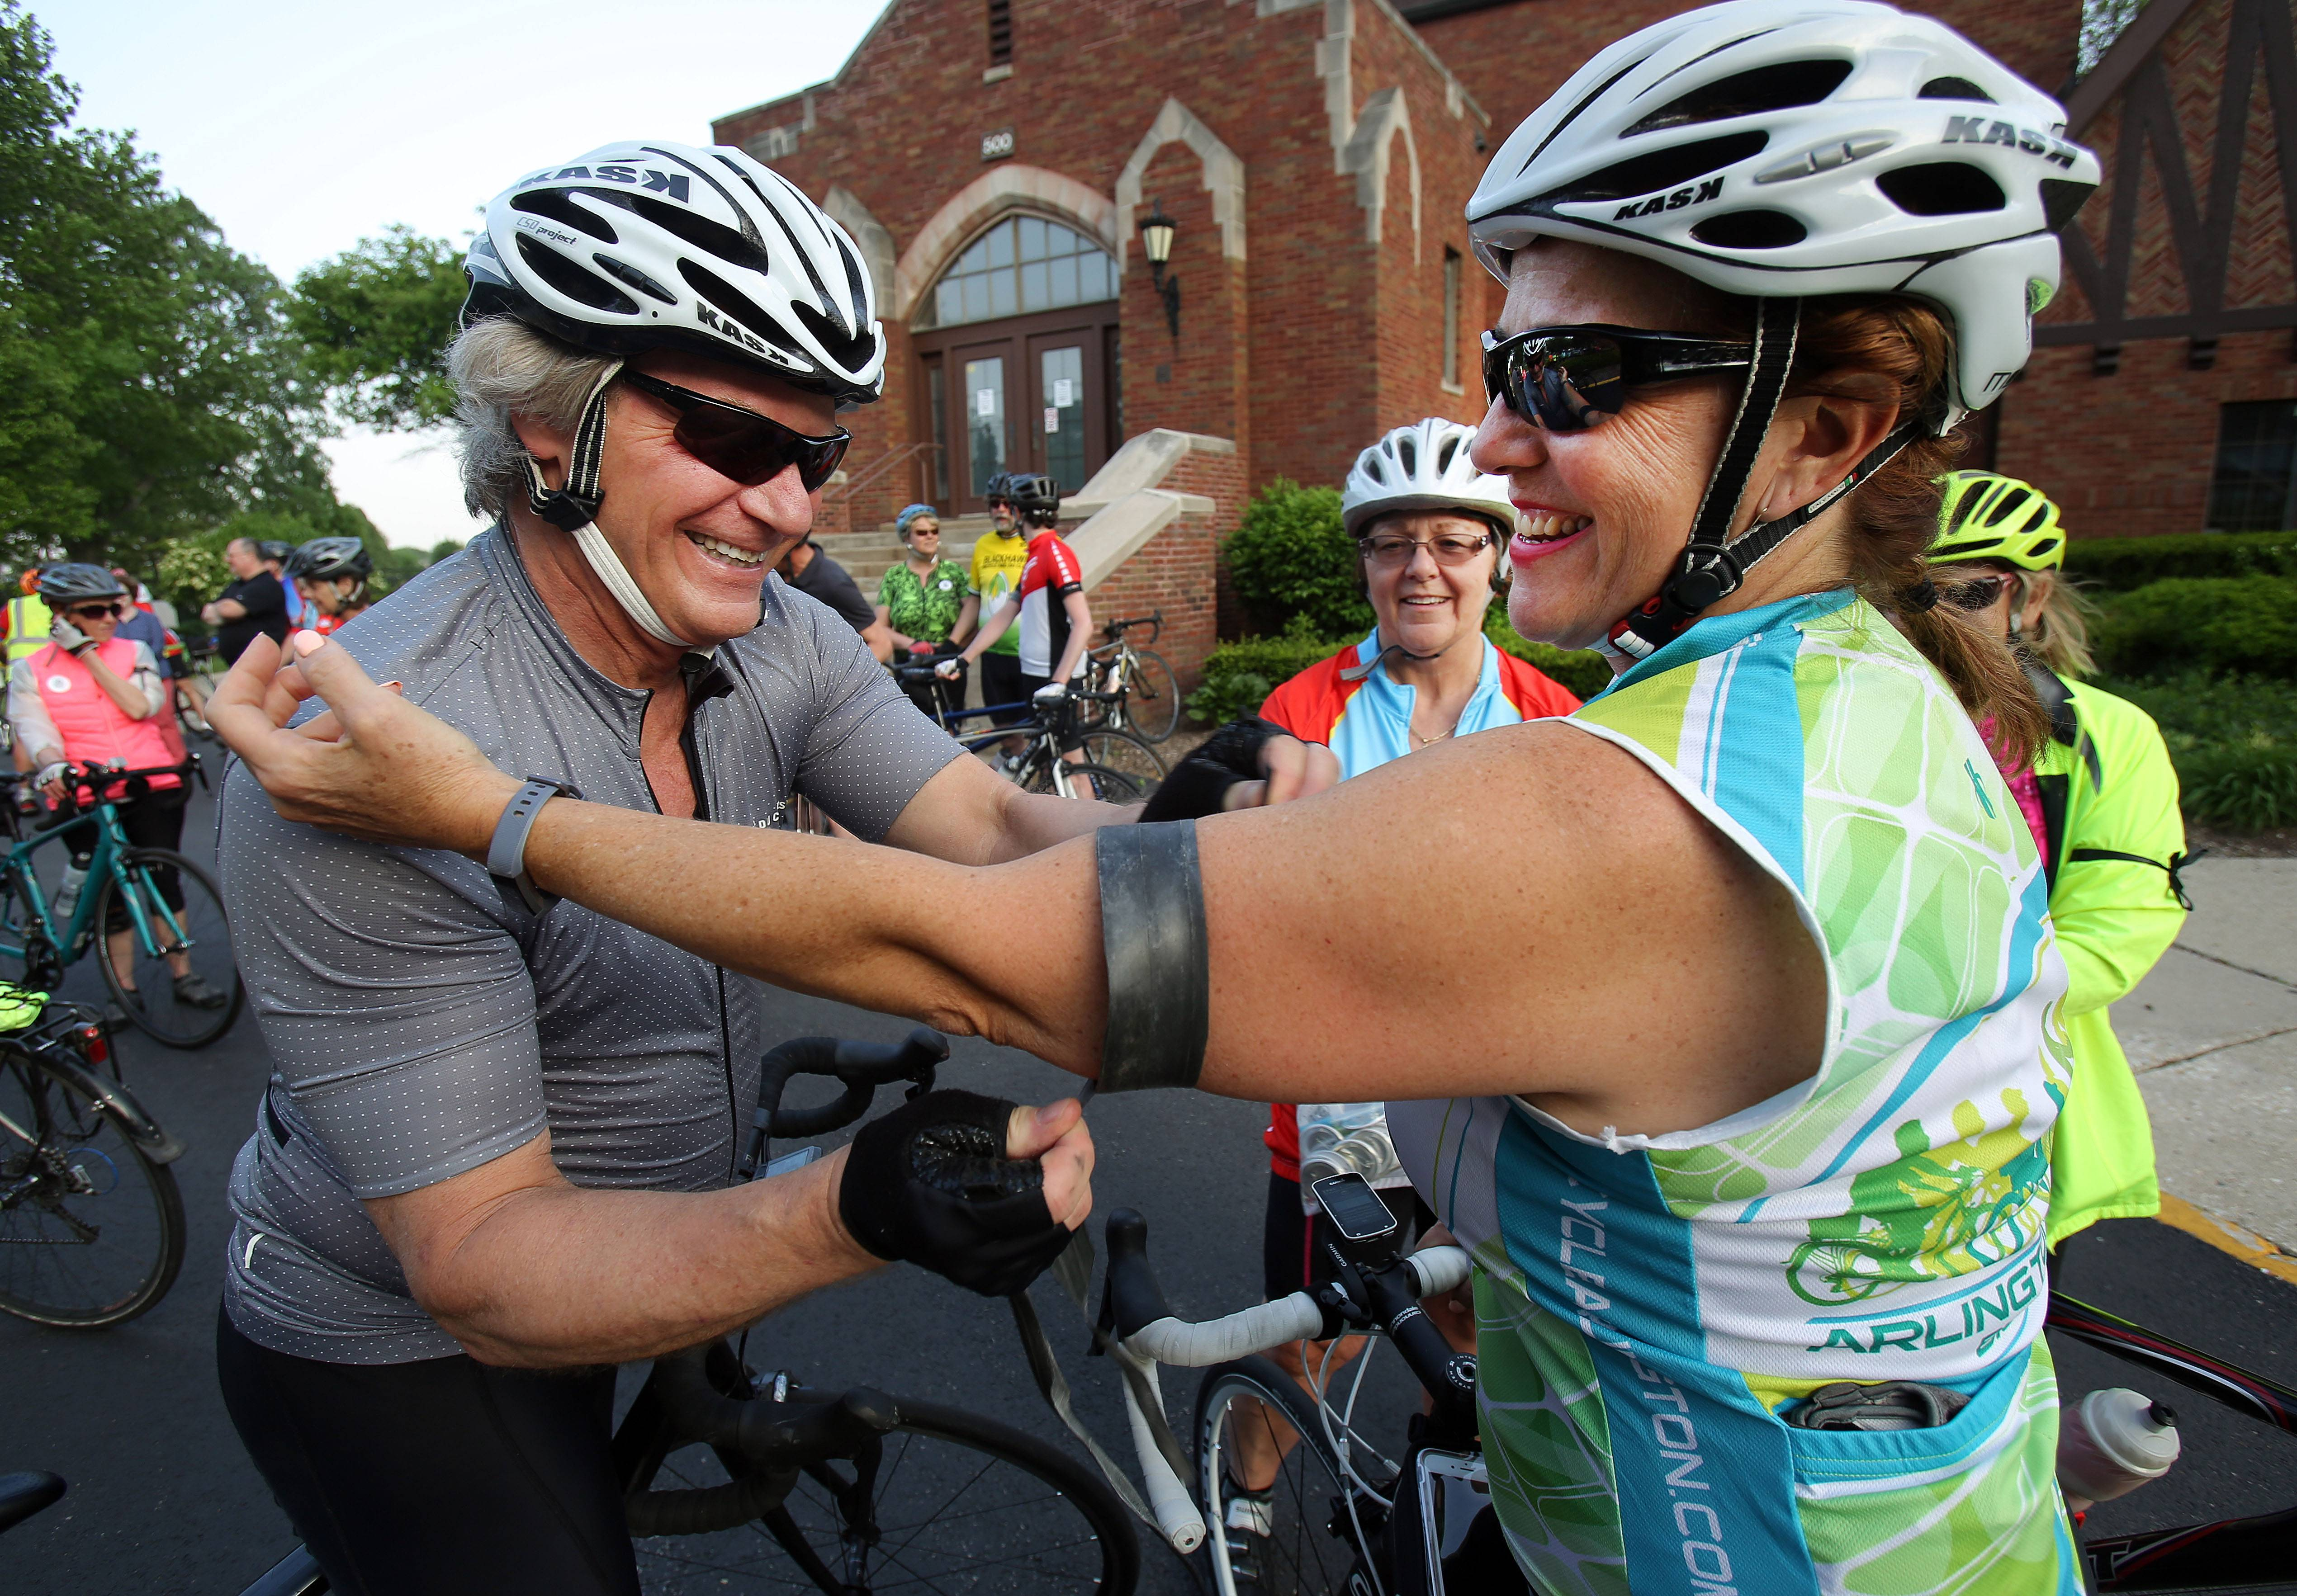 Don Sortor, of Arlington Heights, puts a black armband made of old inner tube on Tara Riley, also of Arlington Heights, on Wednesday. Both are members of the Arlington Heights Bicycle Club who participated in the International Ride of Silence in honor of Mount Prospect cyclist Jodi Beaudry. Beaudry died on June 9, 2016, after being struck by an SUV.